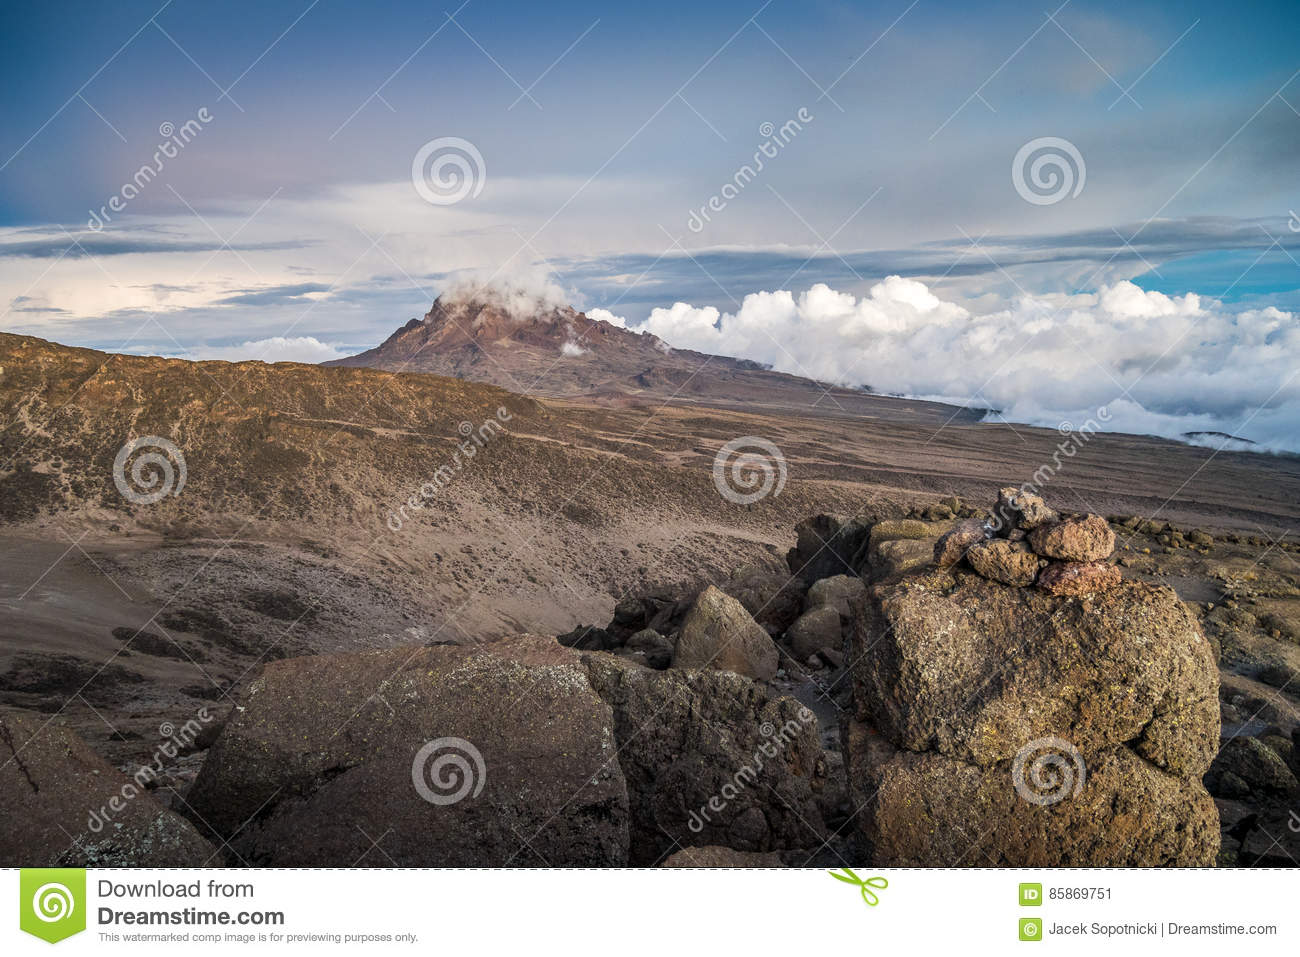 my dream of climbing mount kilimanjaro in tanzania Kilimanjaro region, tanzania: parent range: mount kilimanjaro ( / on 18 july 2016, south african rally champion gugu zulu died while climbing mount kilimanjaro gugu was climbing kilimanjaro with his wife letshego and project leader richard mabaso.